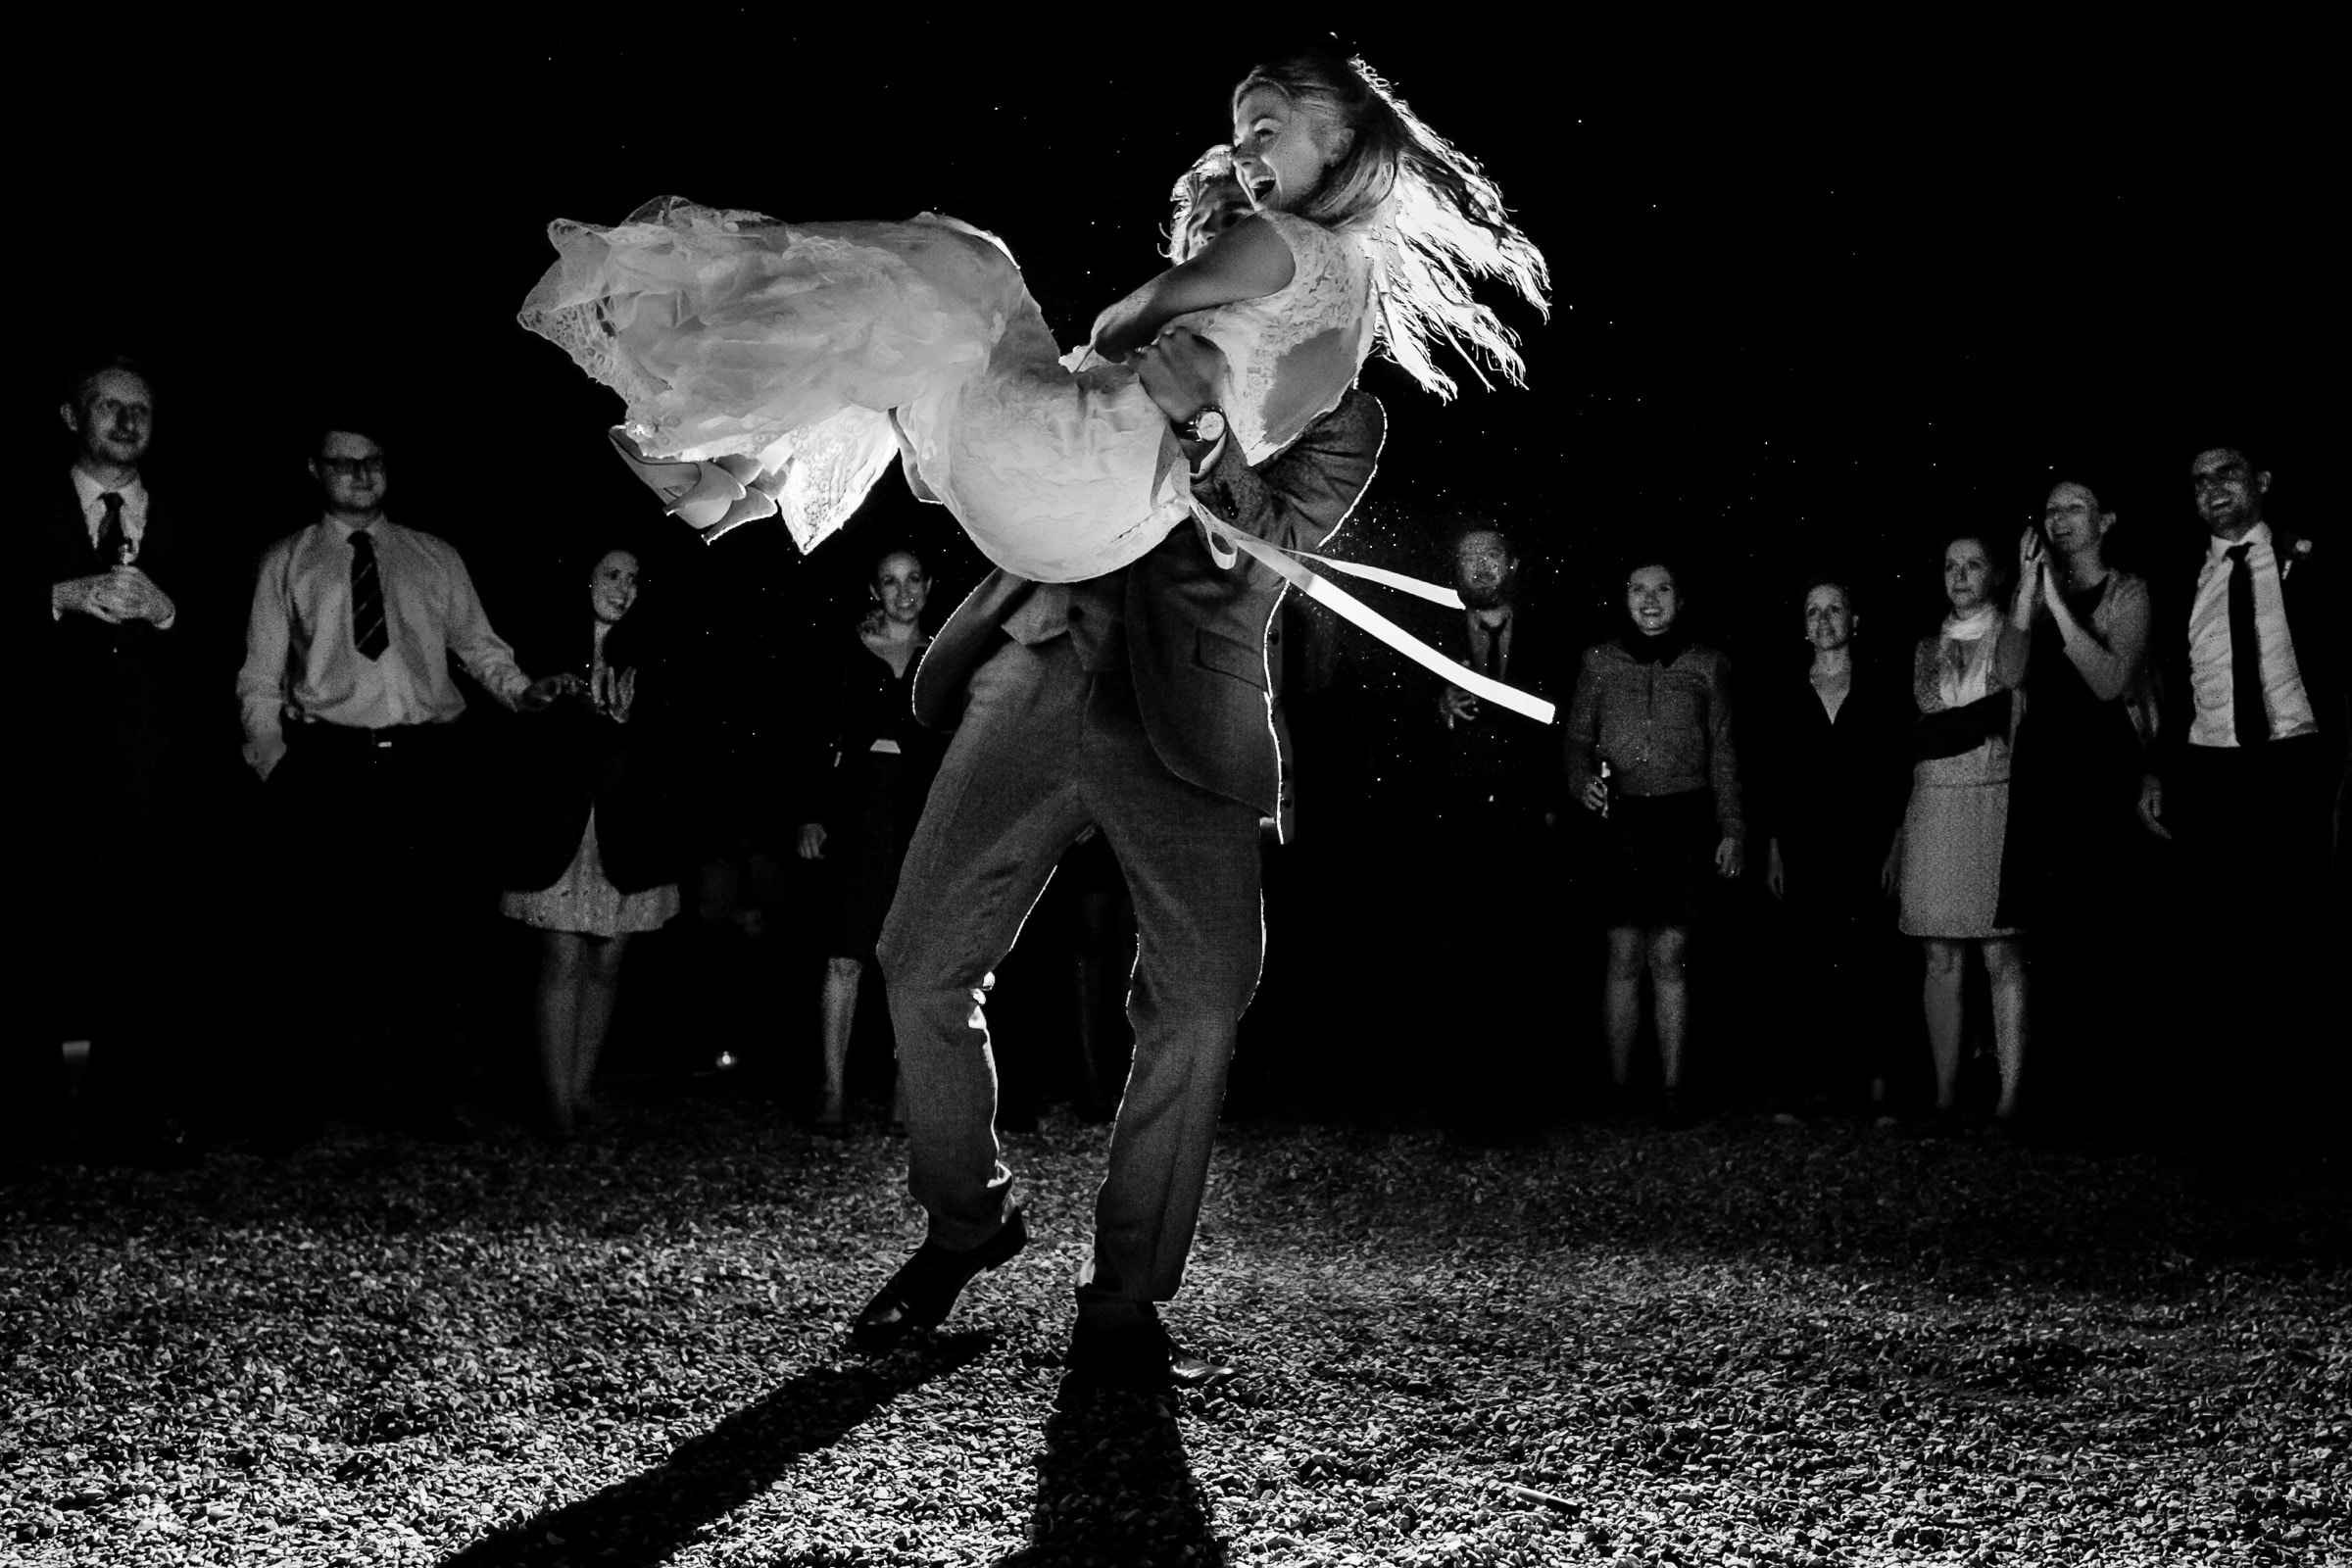 Groom swinging bride in the air dancing during a French Chateau wedding in Normandy, France